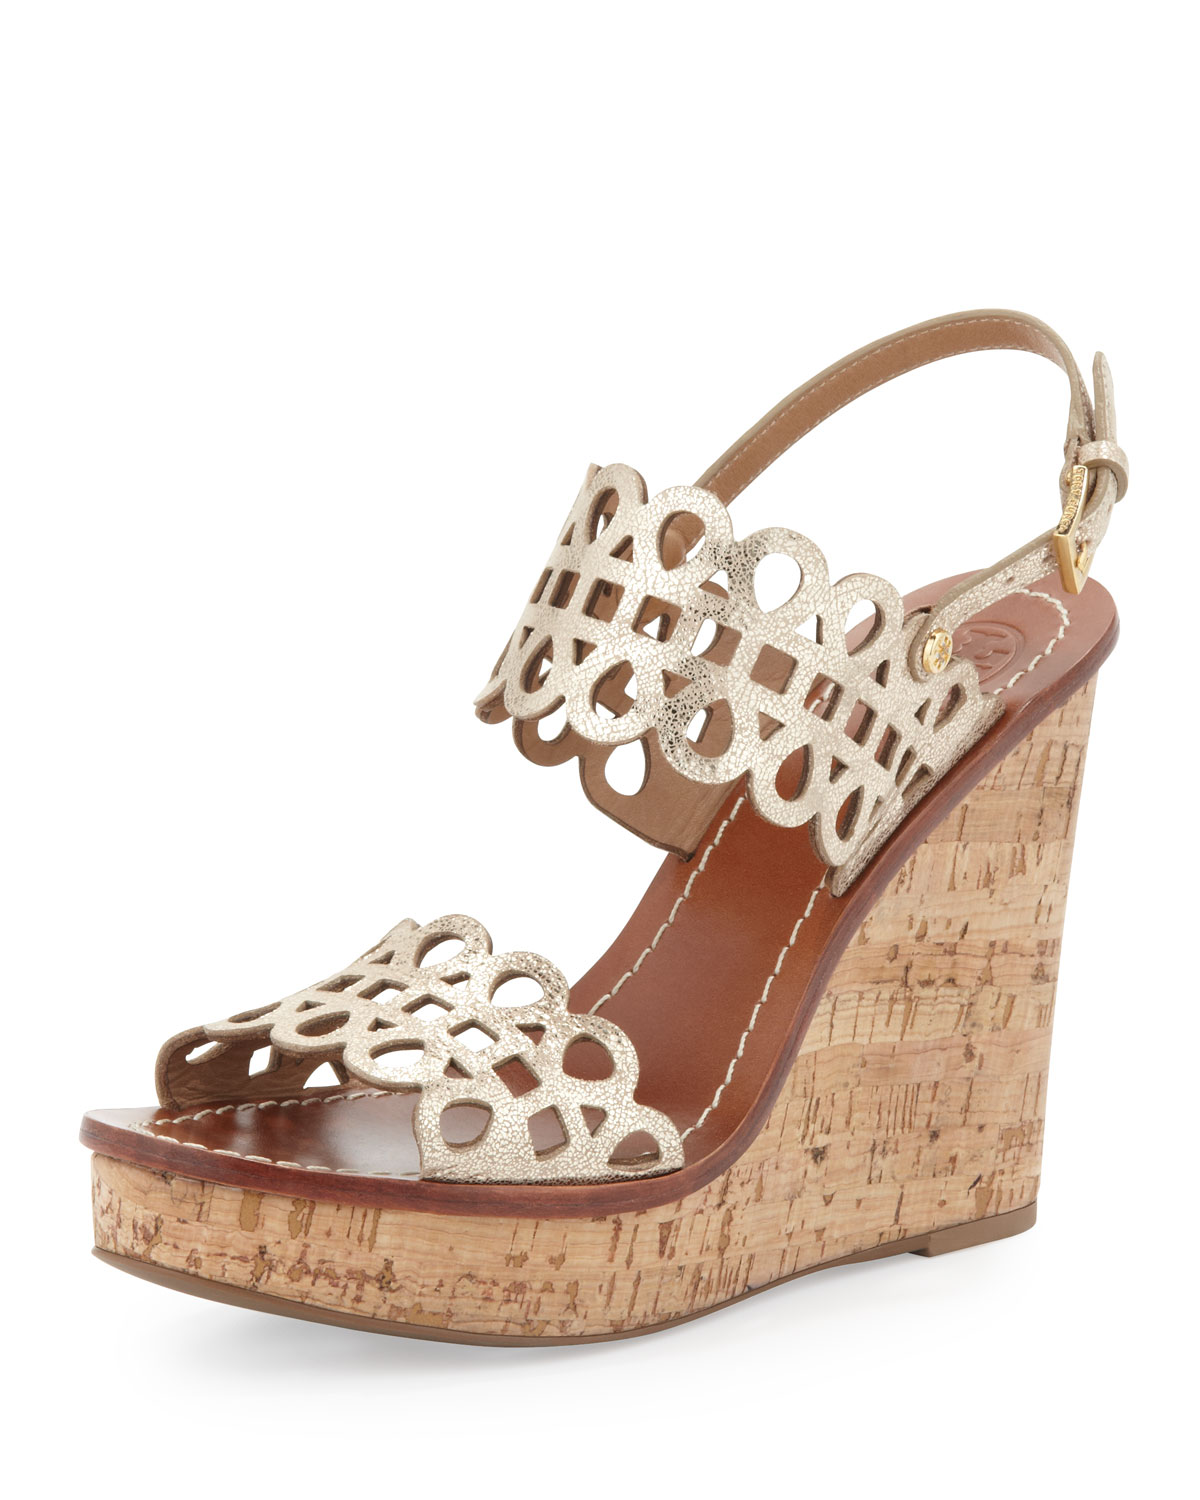 Tory Burch Caged Slingback Wedge Sandals outlet limited edition outlet sale online sale hot sale discount geniue stockist free shipping low shipping N2Jk7PV